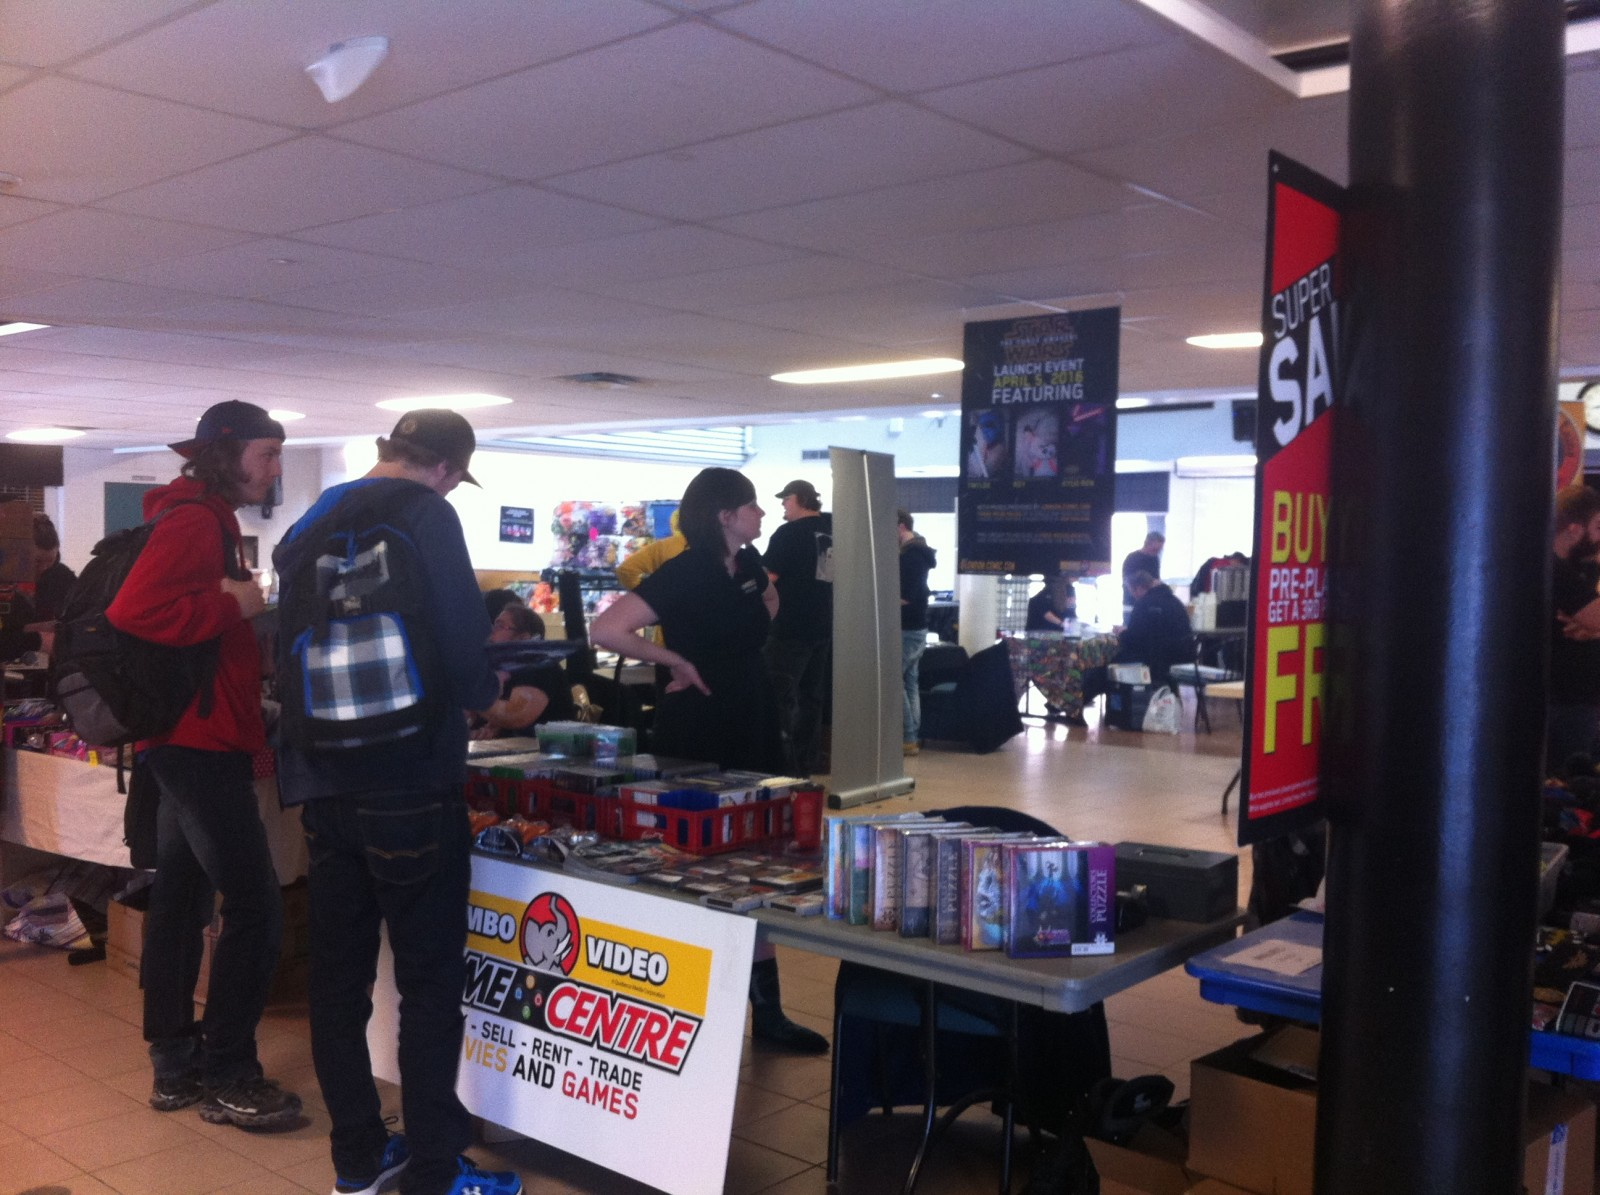 Fanshawe Comic Con builds anticipation for similar events